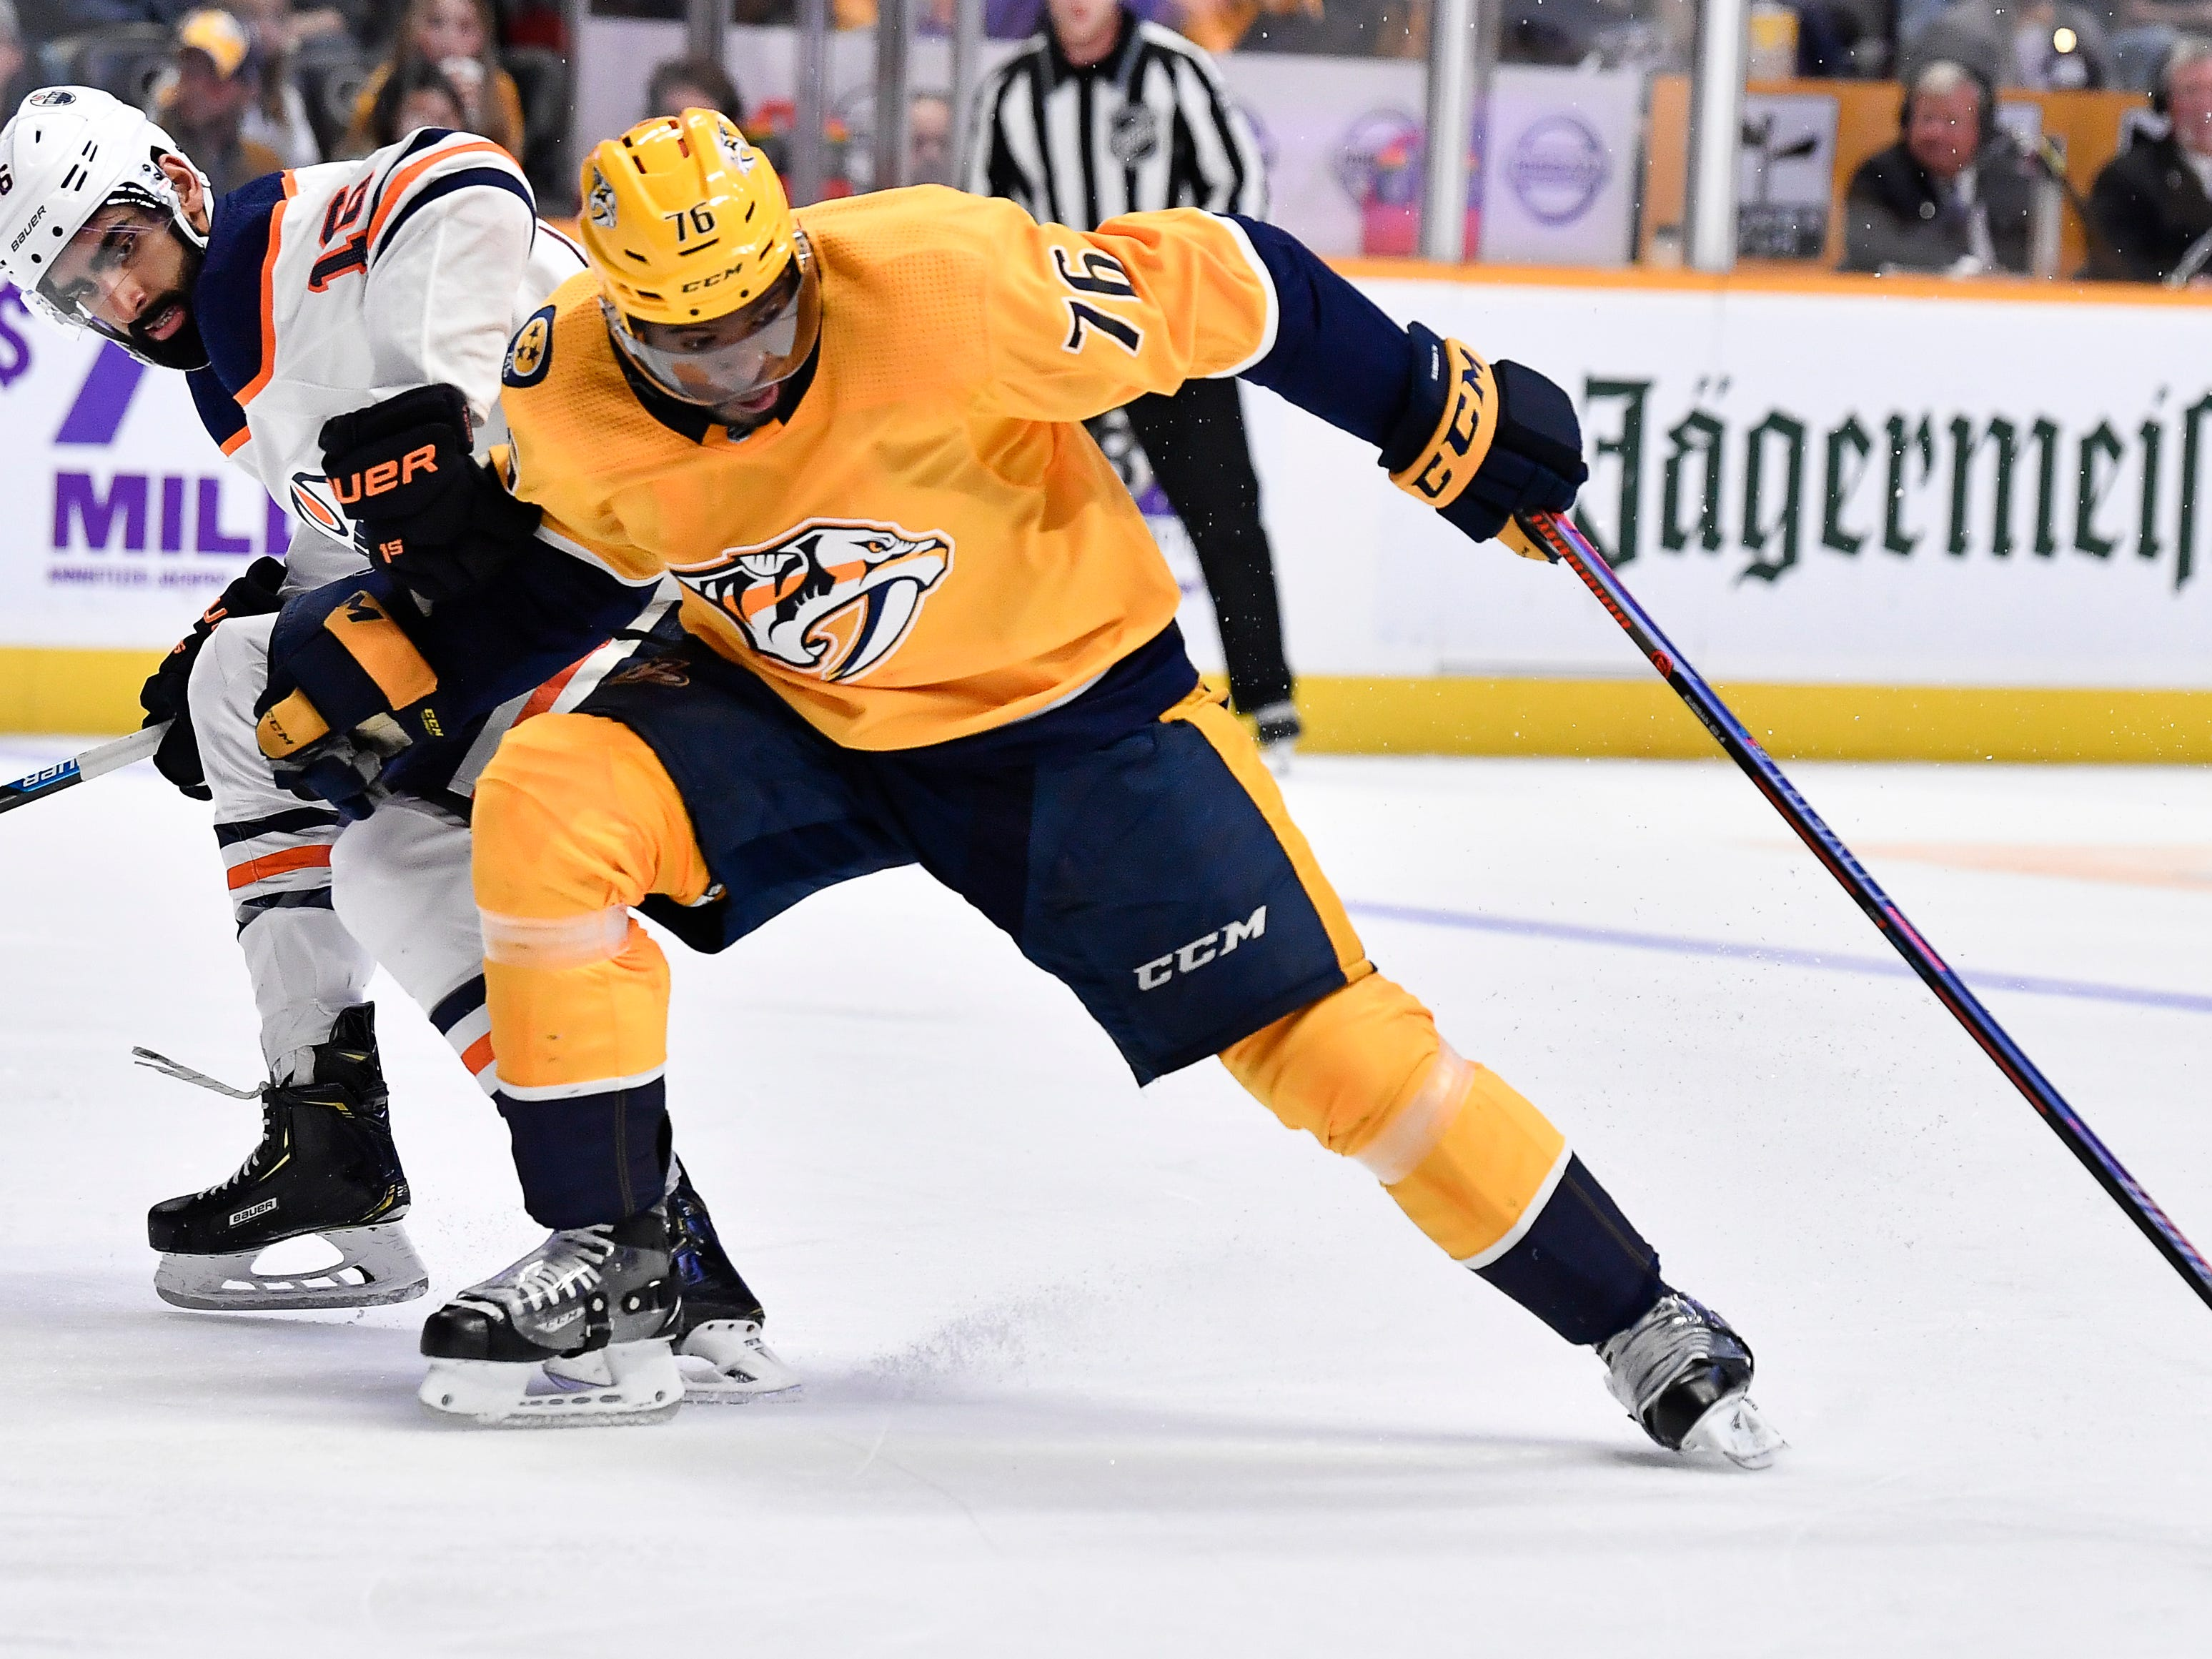 Predators defenseman P.K. Subban (76) attacks the goal past Oilers left wing Jujhar Khaira (16) during the first period at Bridgestone Arena Saturday, Oct. 27, 2018, in Nashville, Tenn.